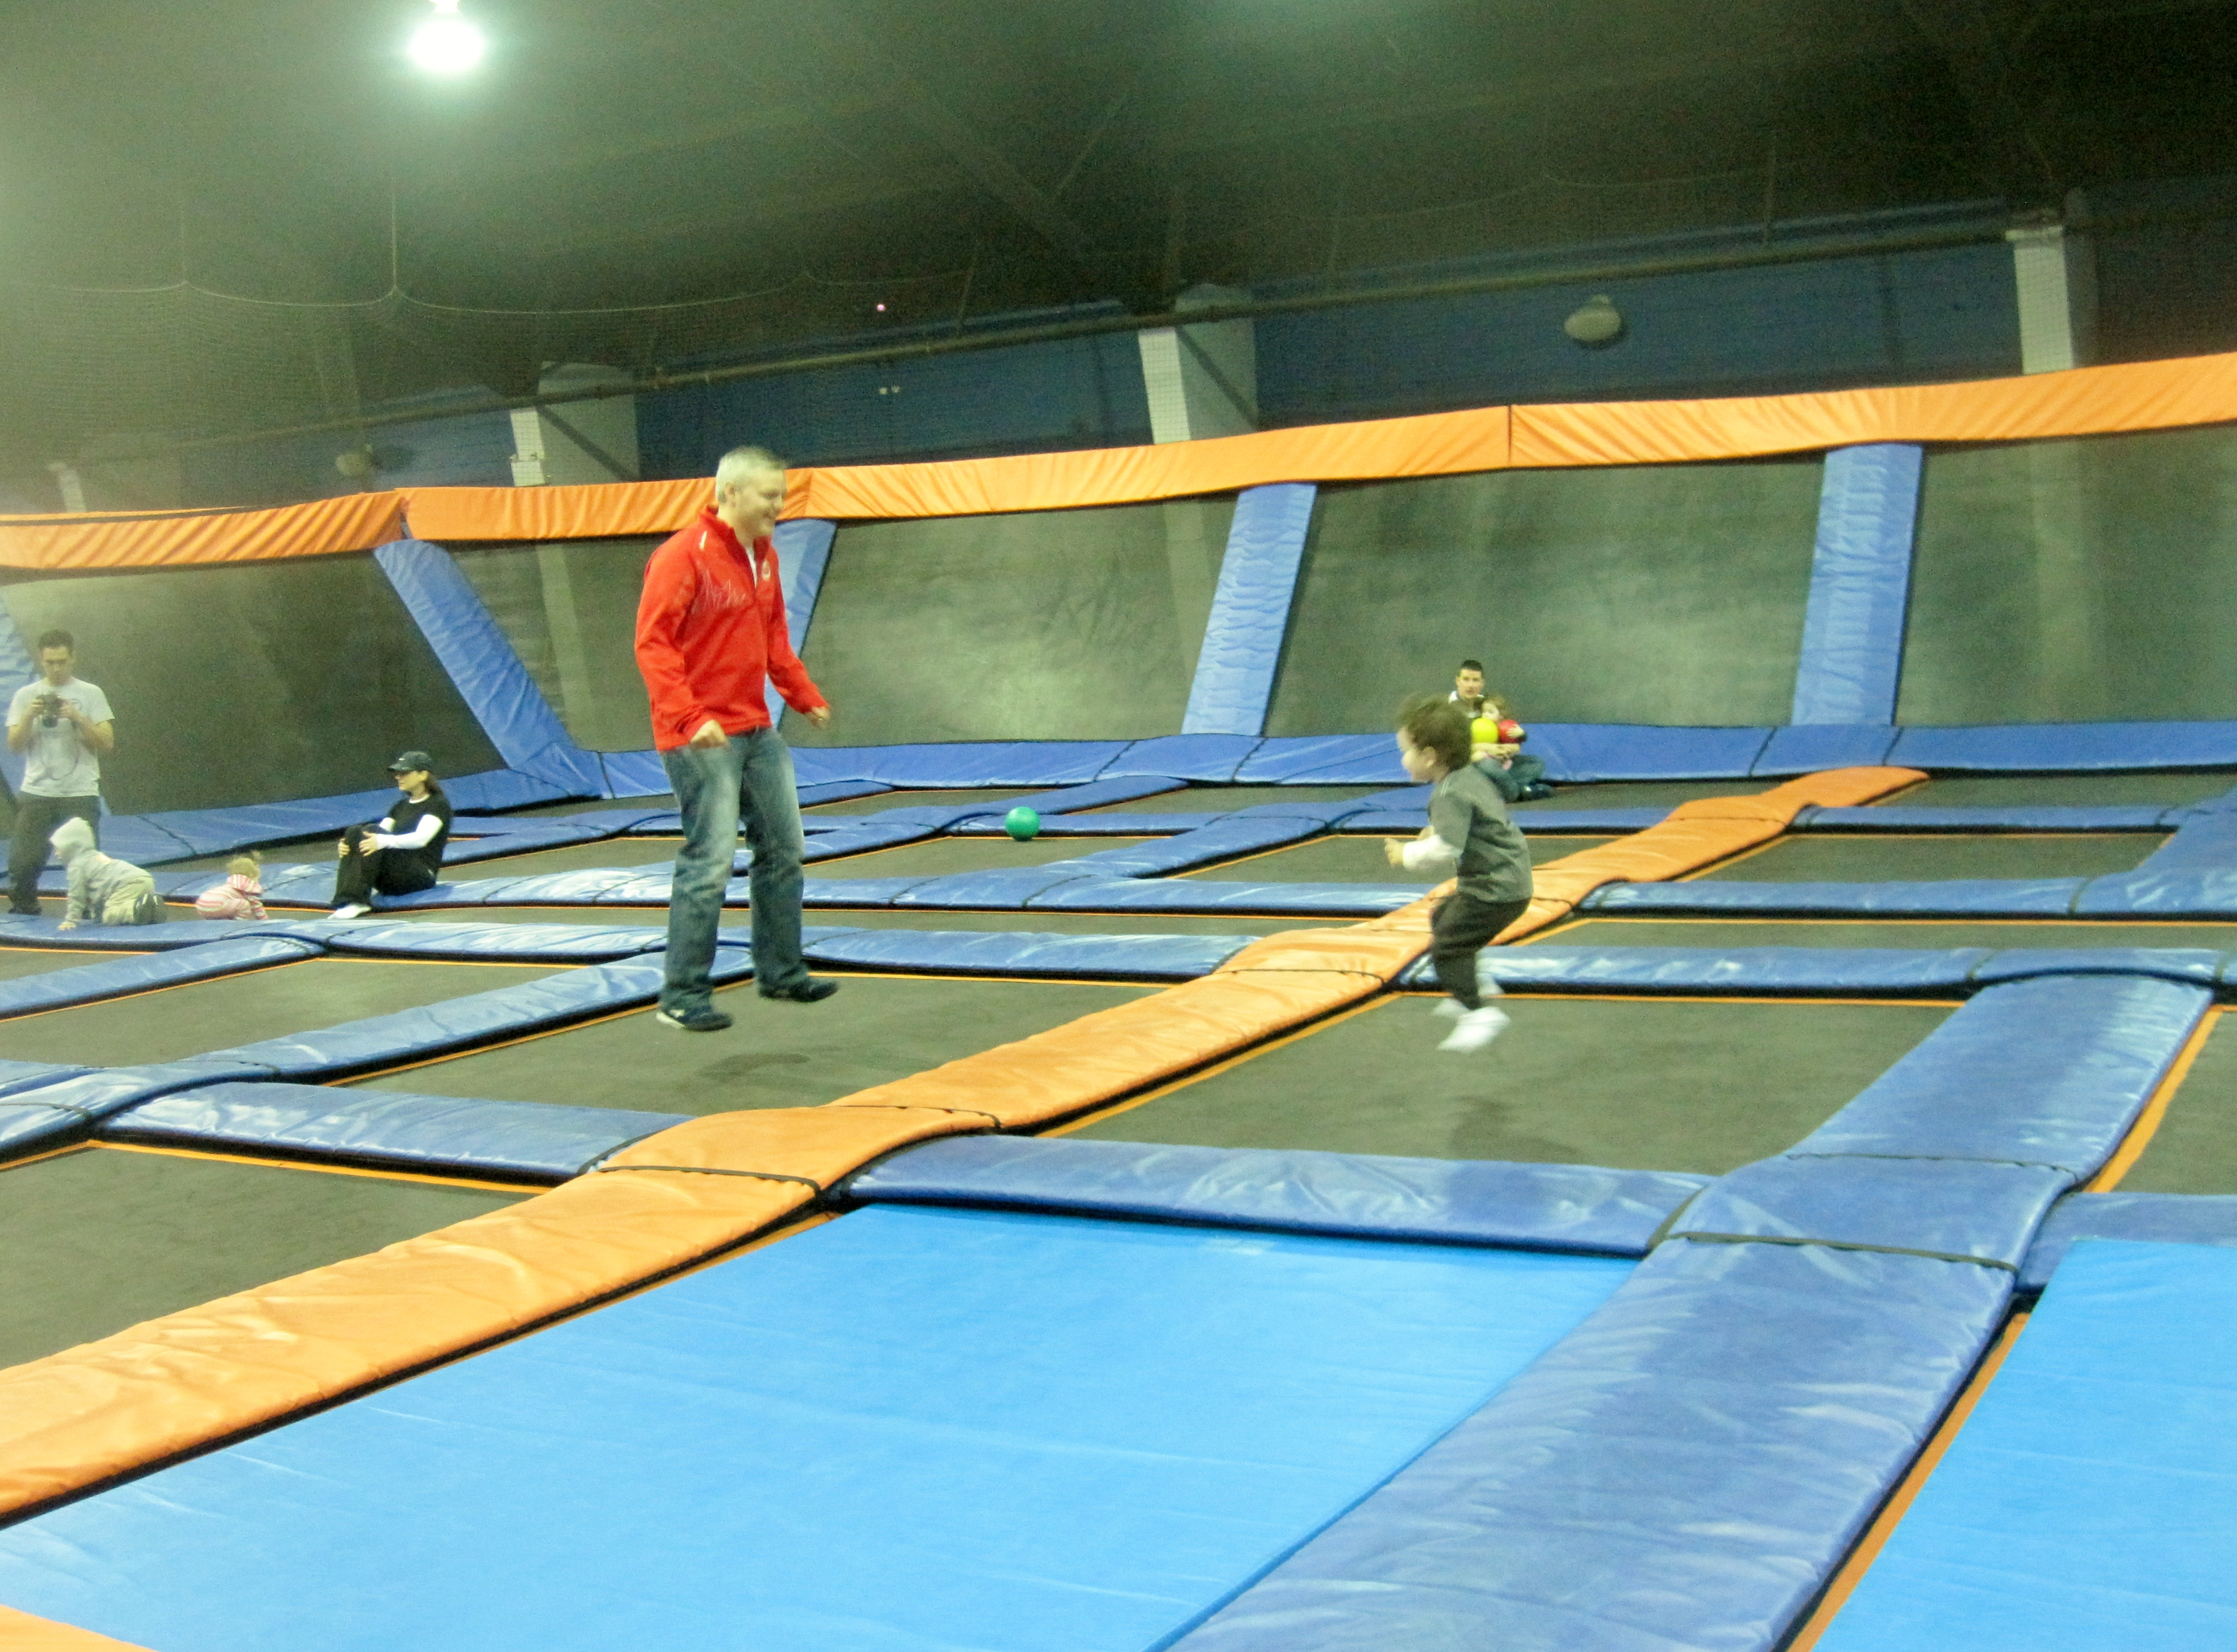 Trampoline Park 031 (2).jpg